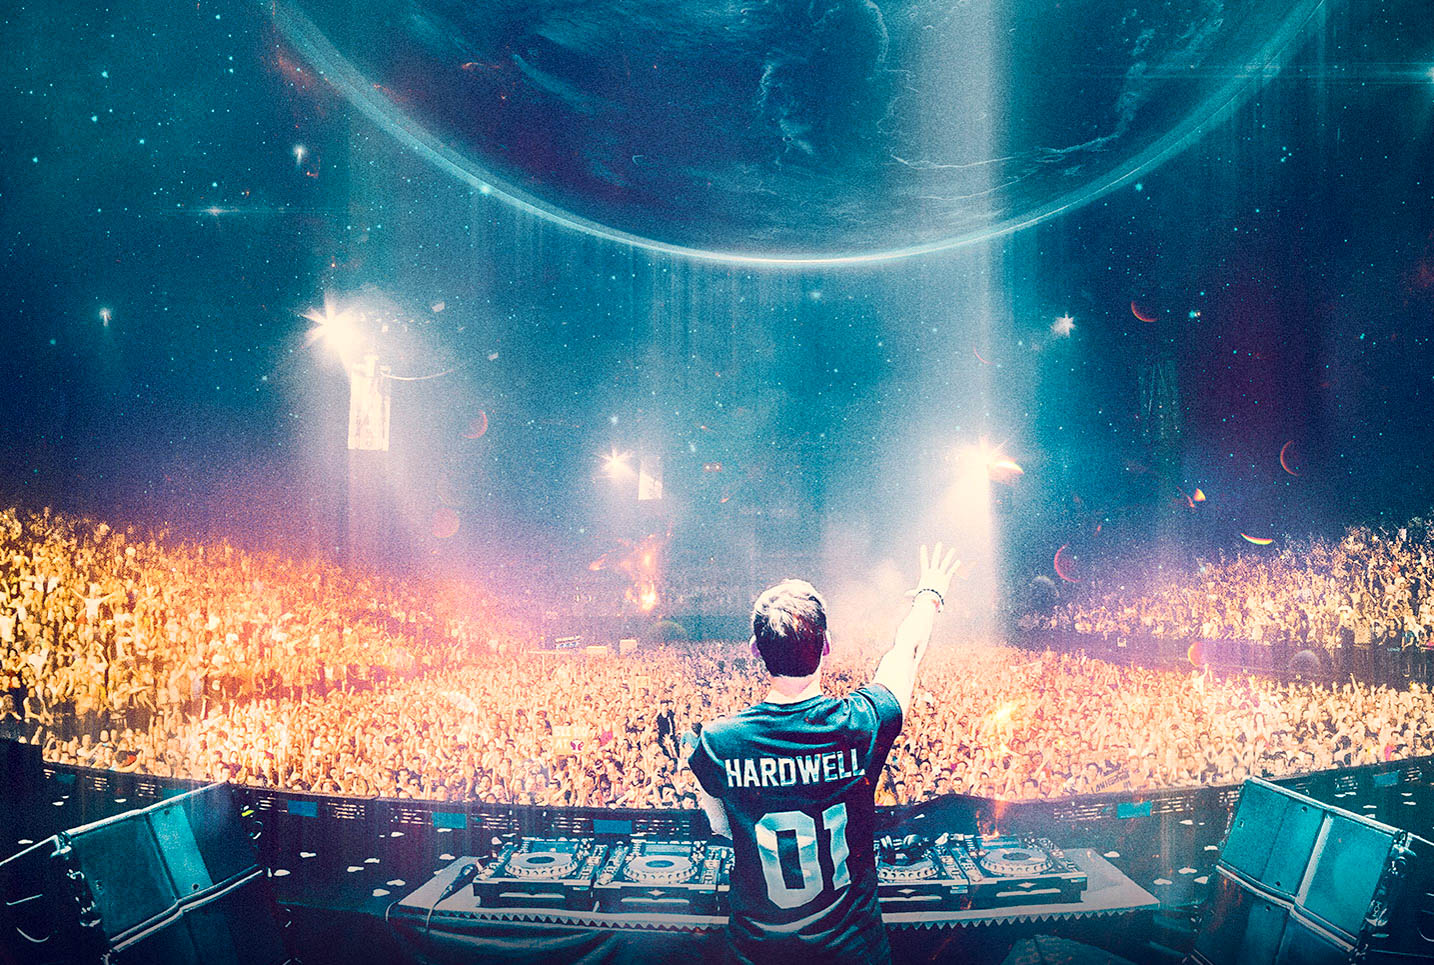 Hardwell best selected hd wallpapers backgrounds in high - Bet wallpaper ...